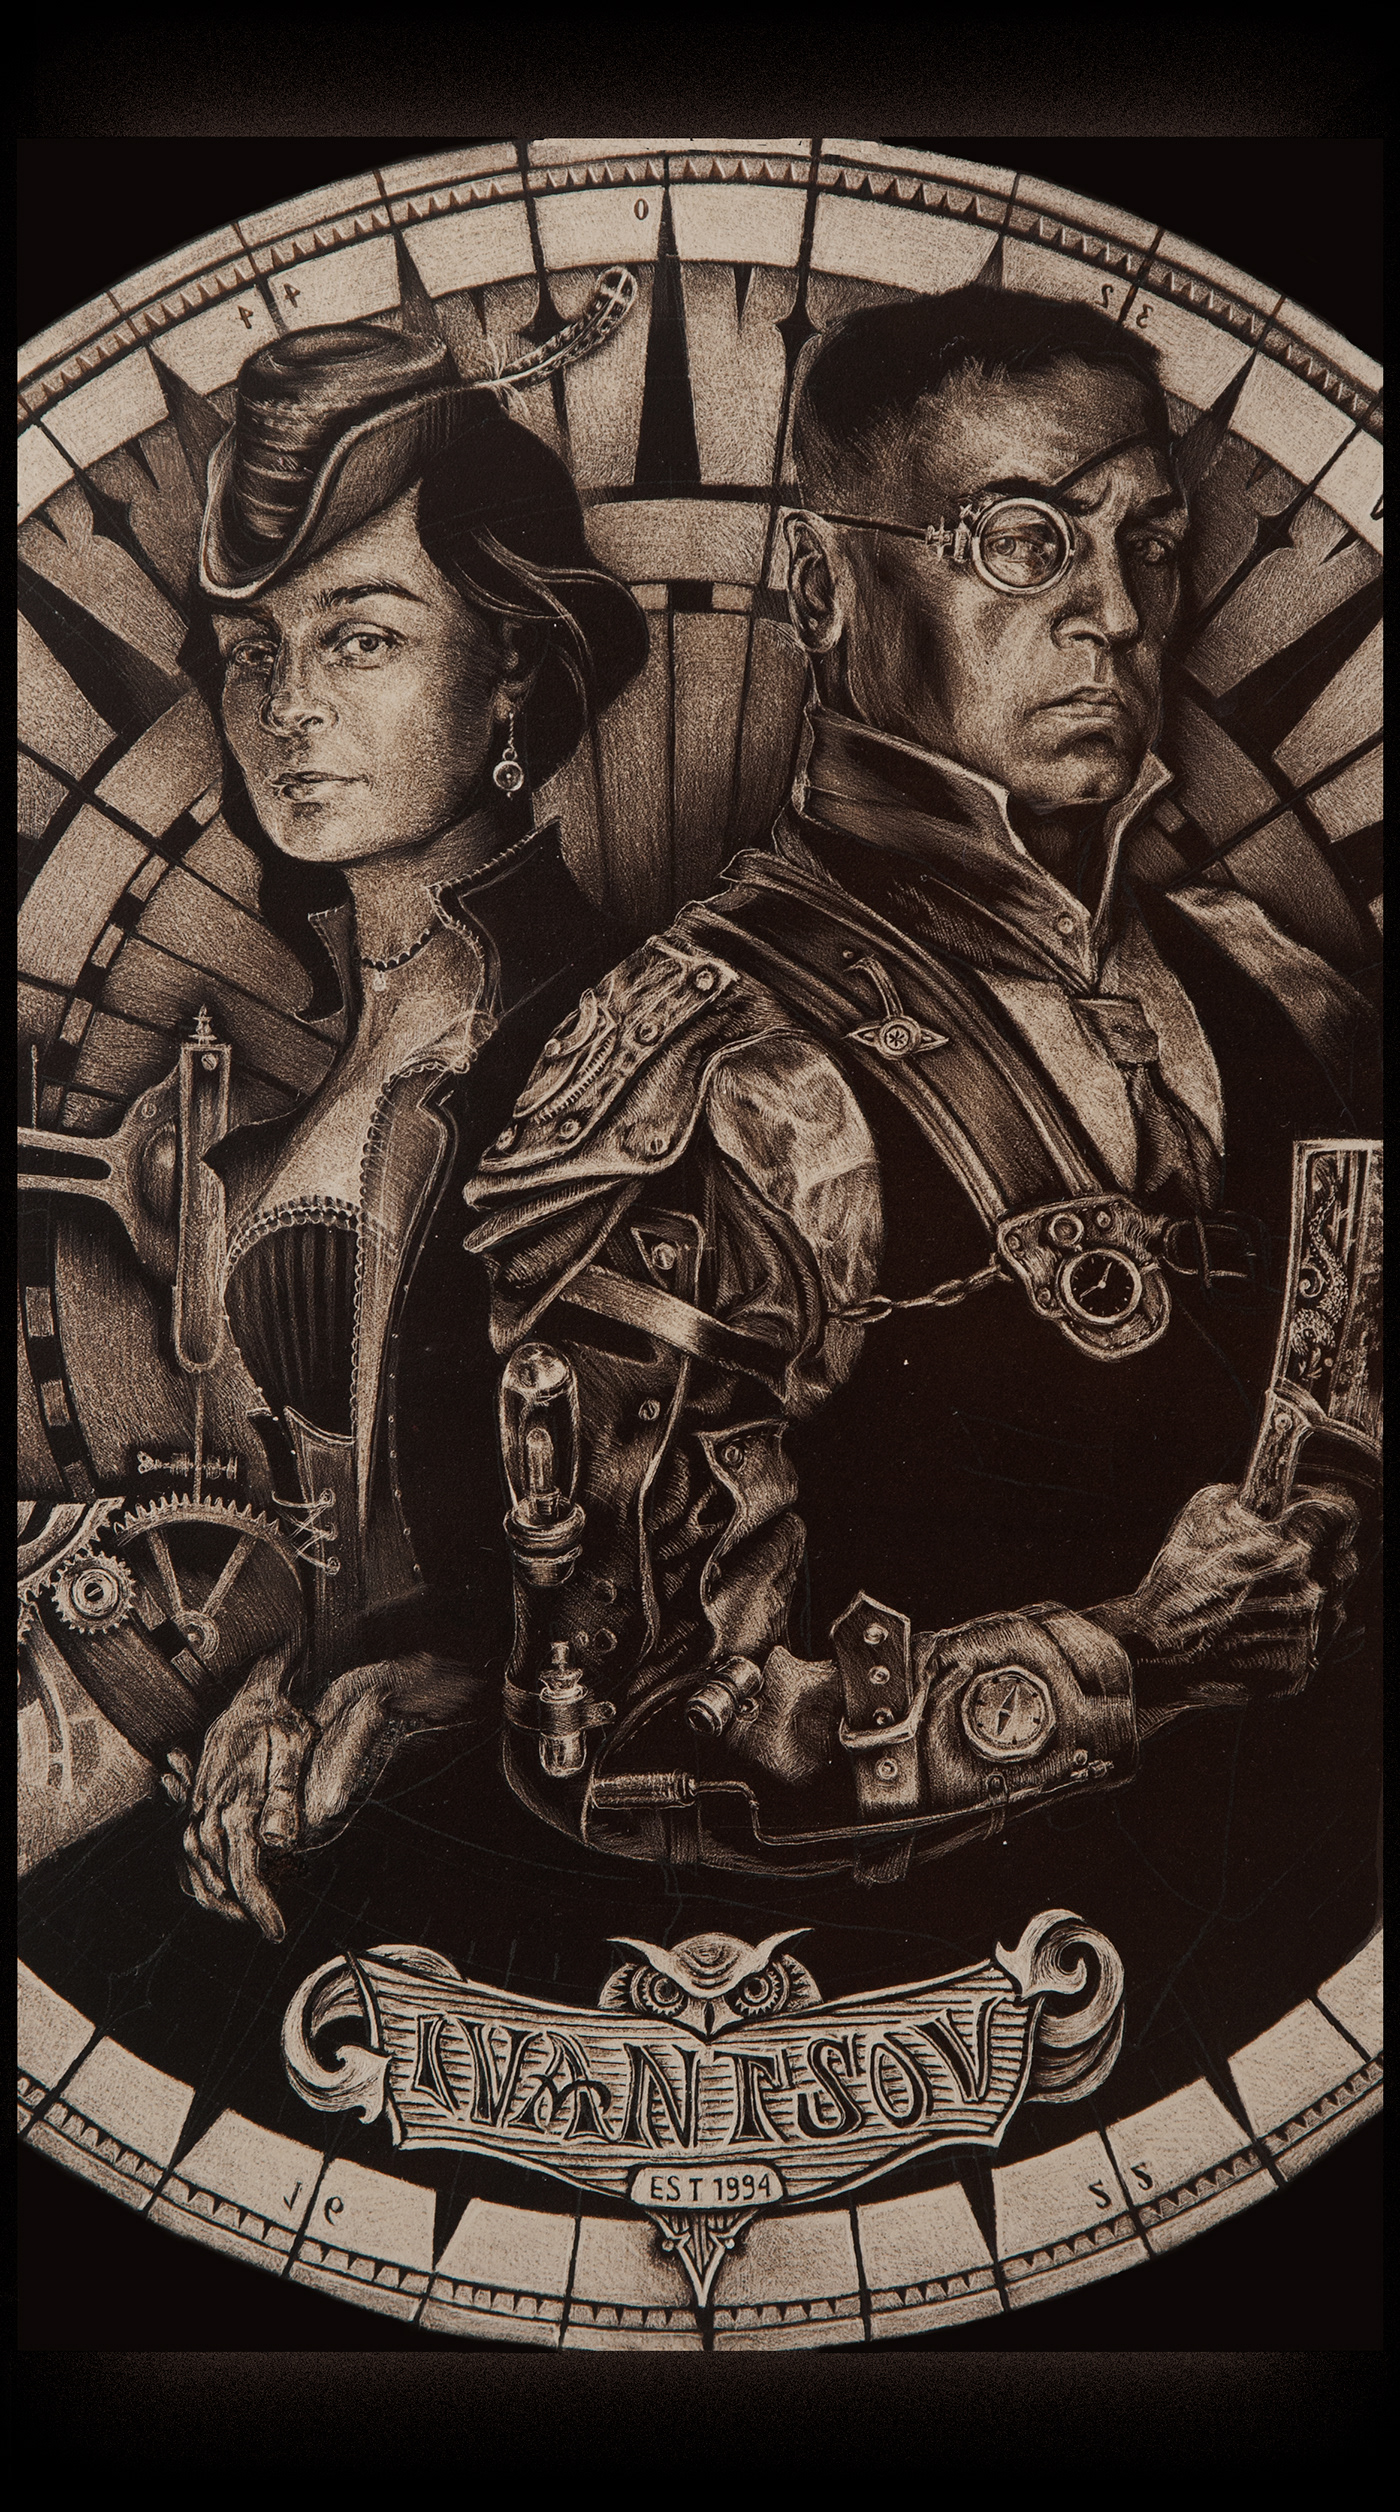 engraving lithography characters people STEAMPUNK costumes man and woman